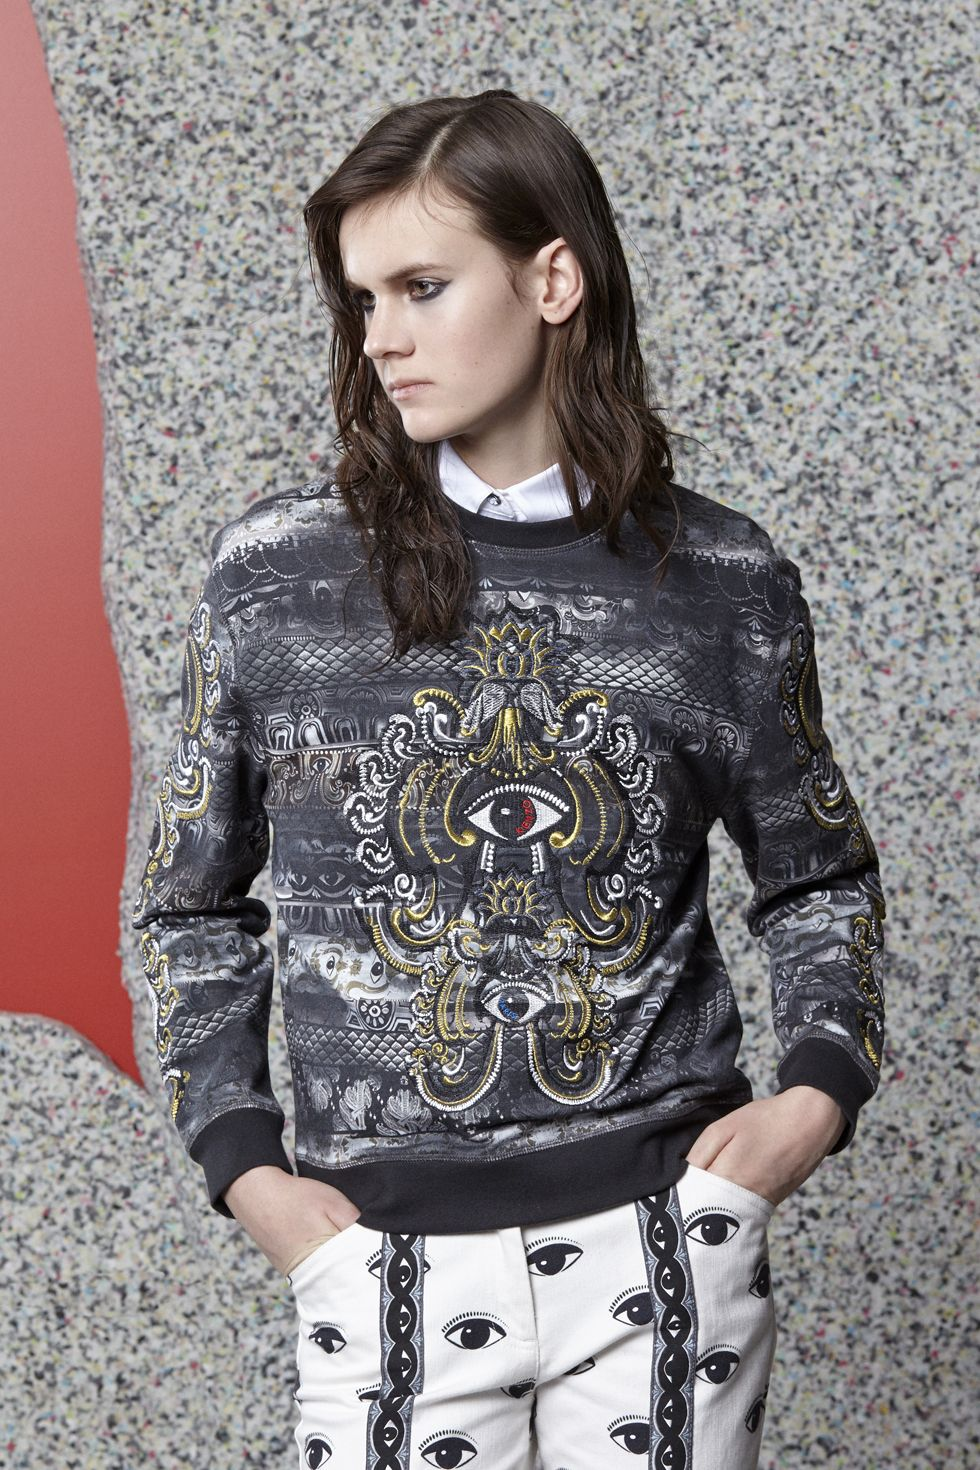 fw13_w_look27_a_img_7207_0